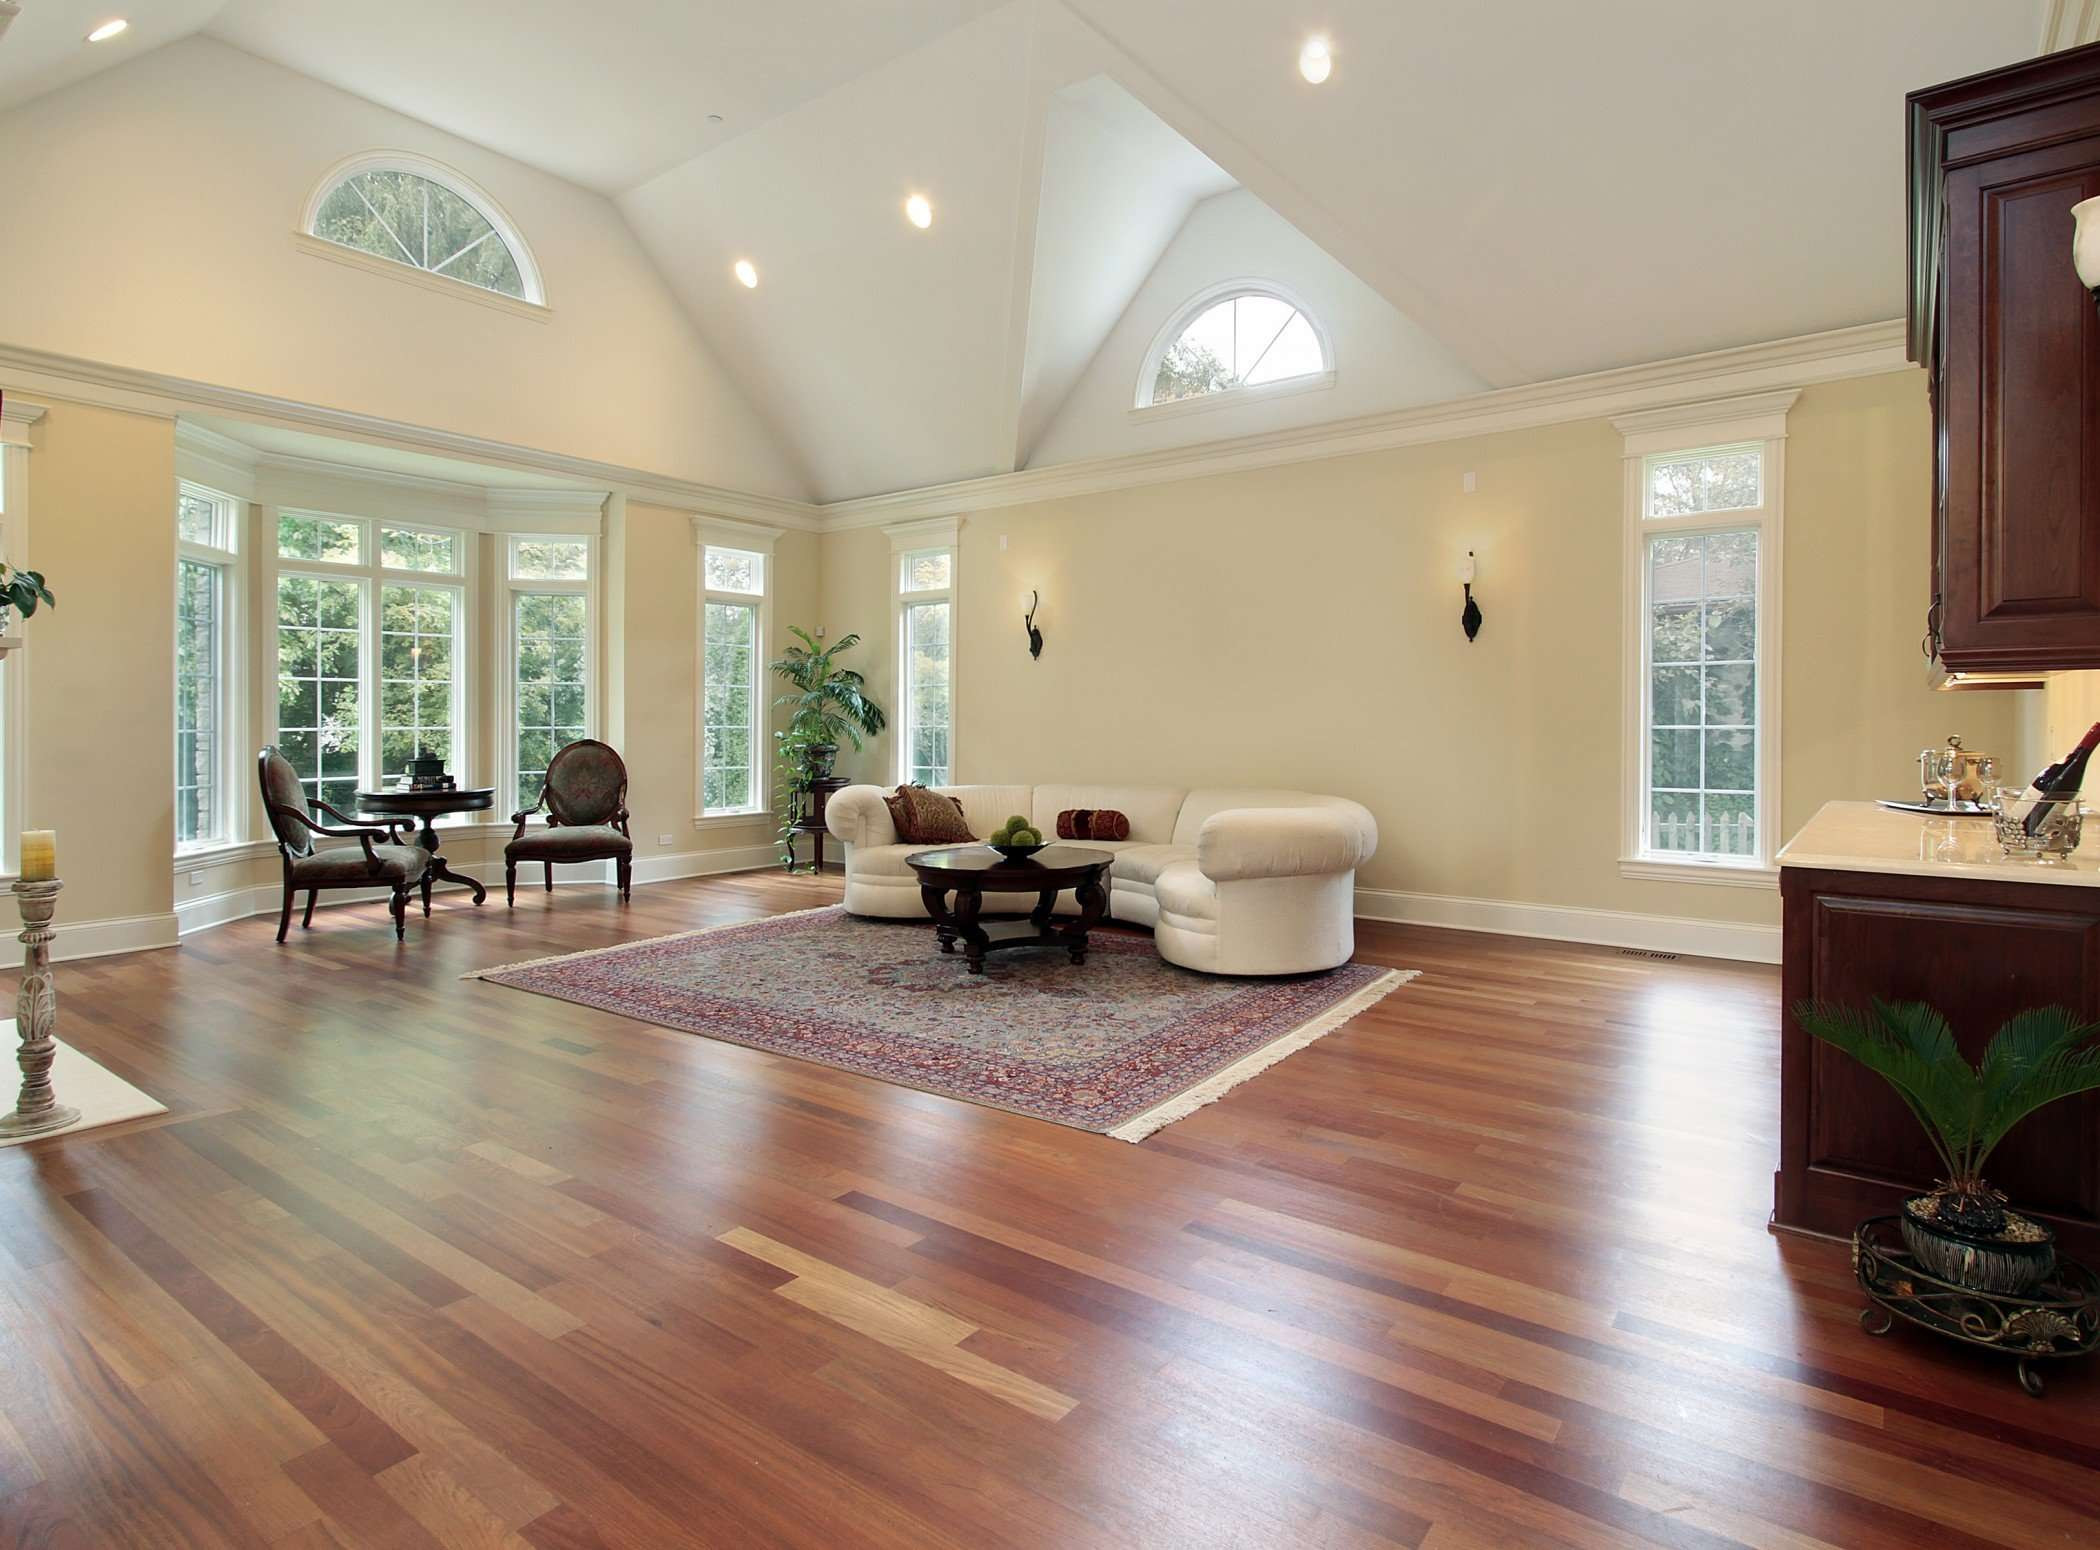 how much is the average cost to install hardwood floors of wood floor price lists a1 wood floors intended for perths largest range of wood floors